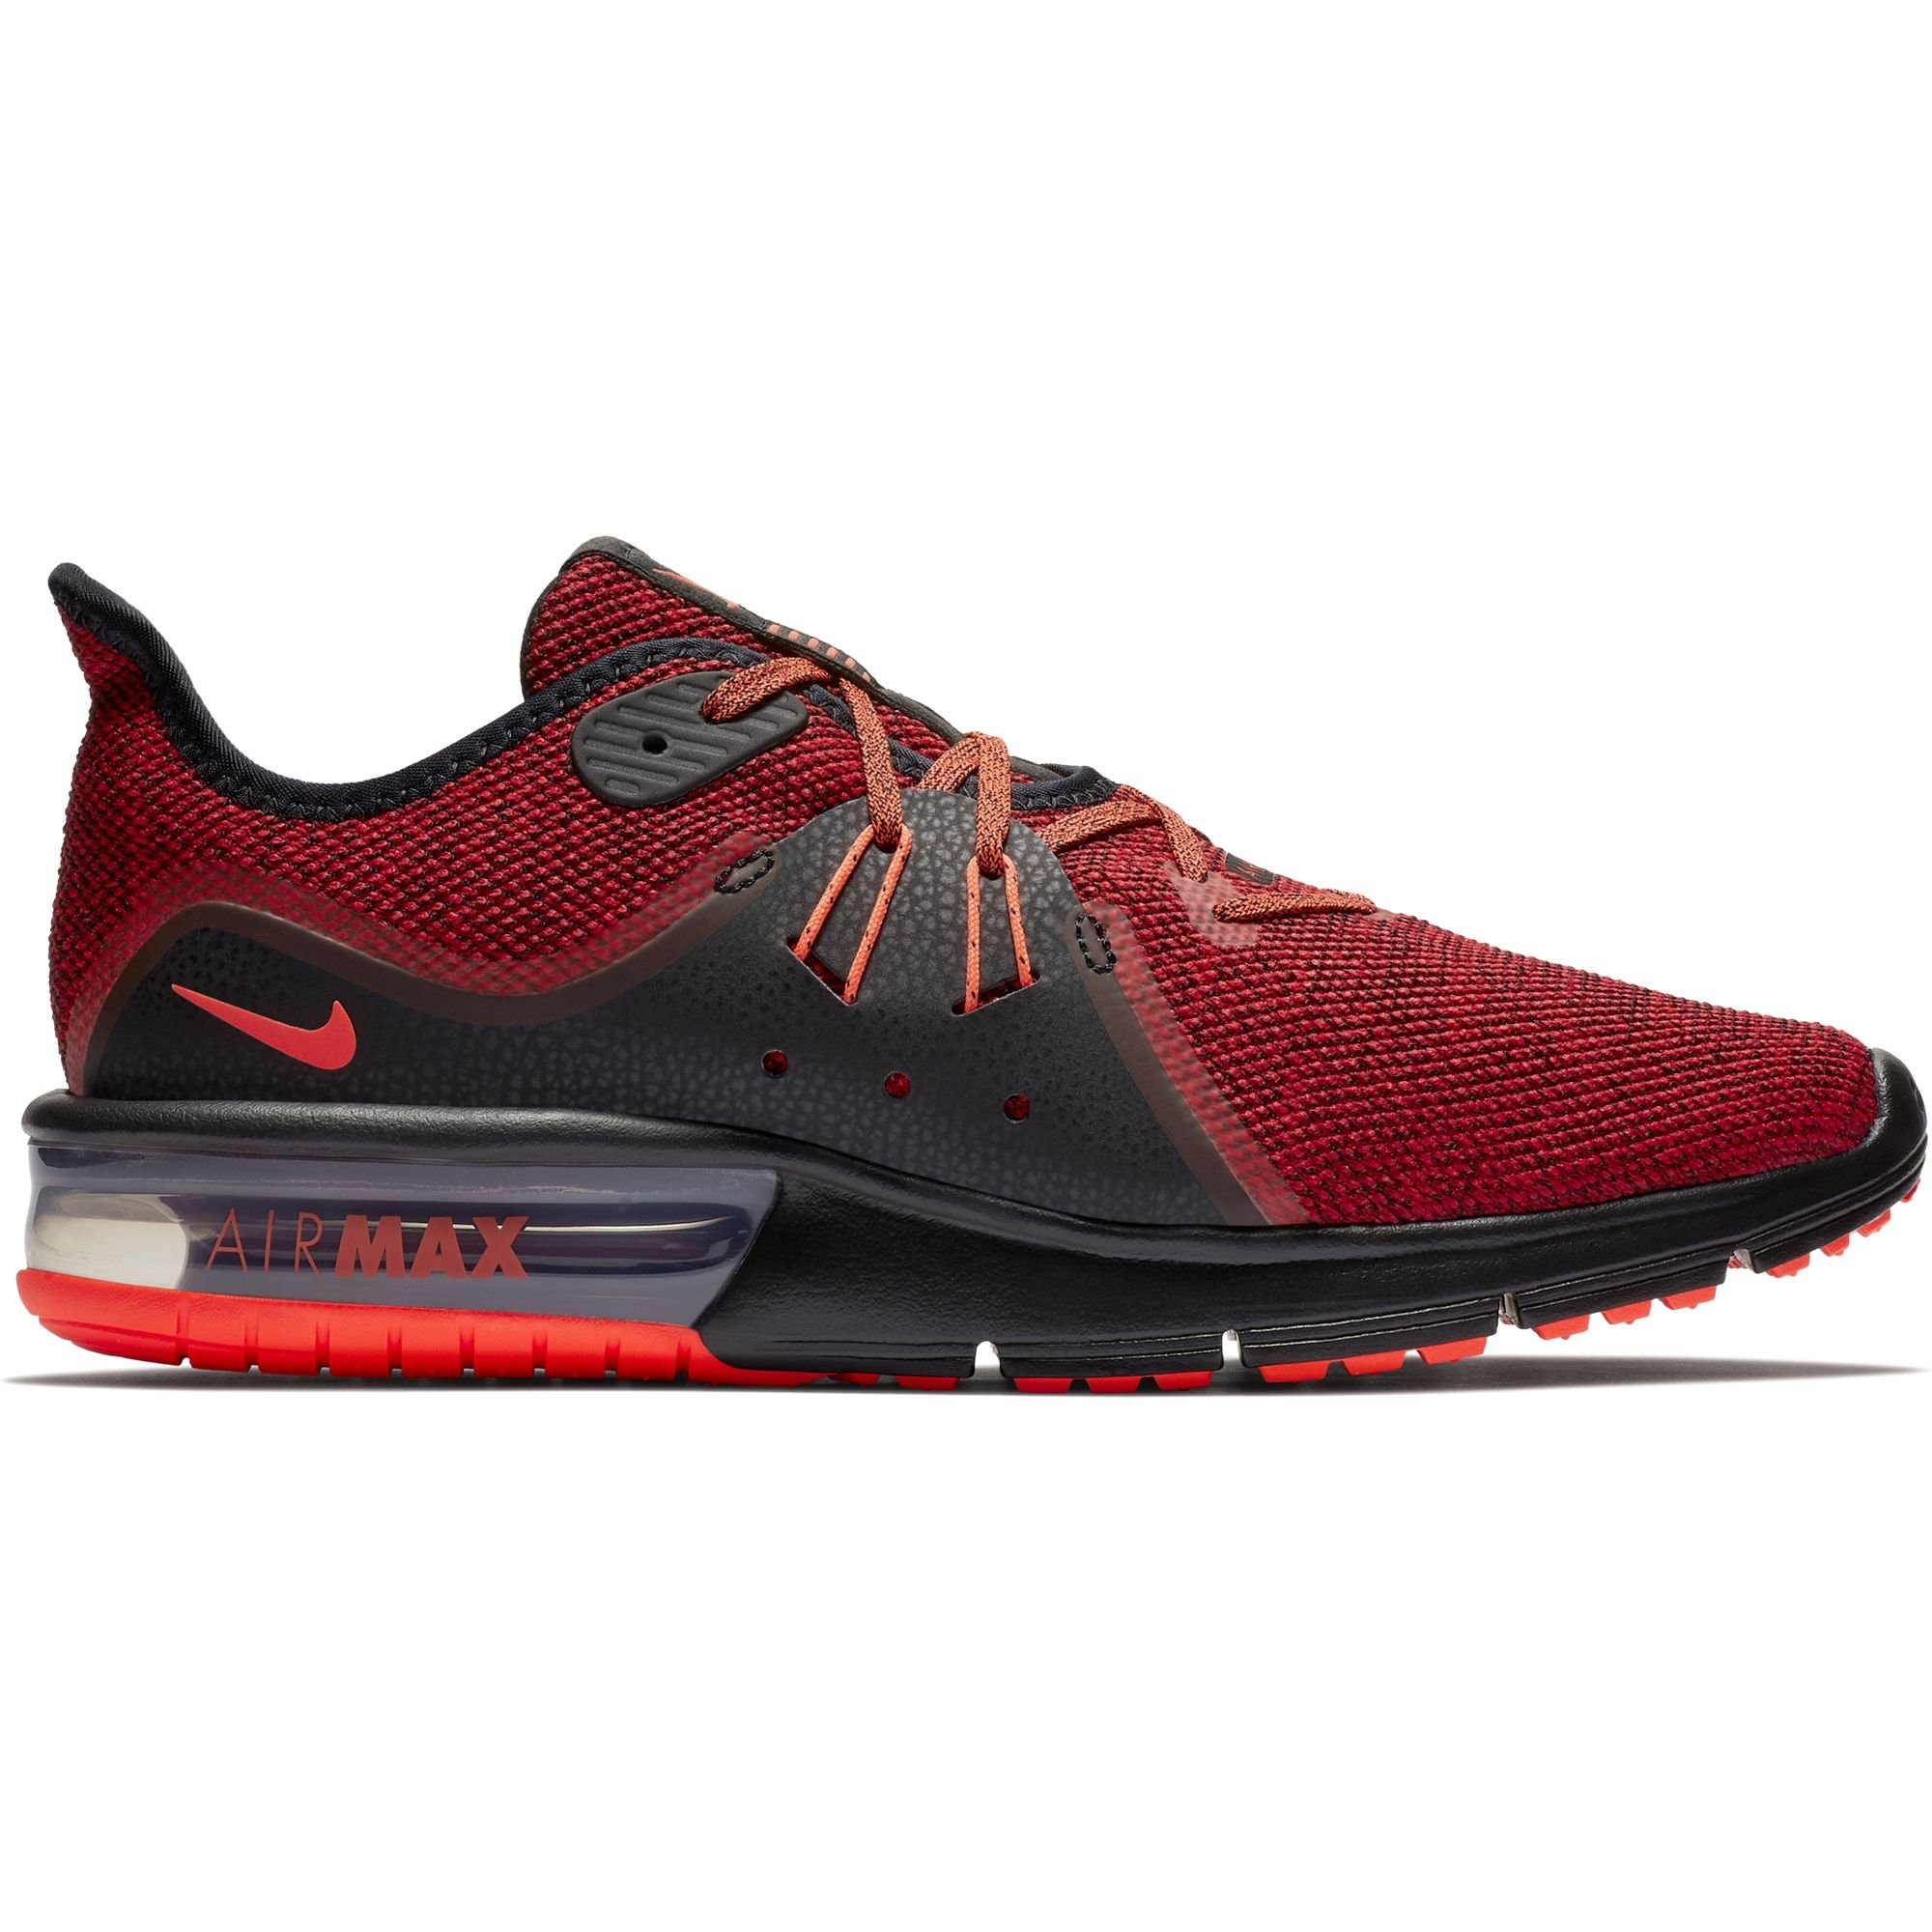 watch 81d48 fc621 Galleon - Nike Men s Air Max Sequent 3 Running Shoes (10 D(M) US,  Black Total Crimson University Red)